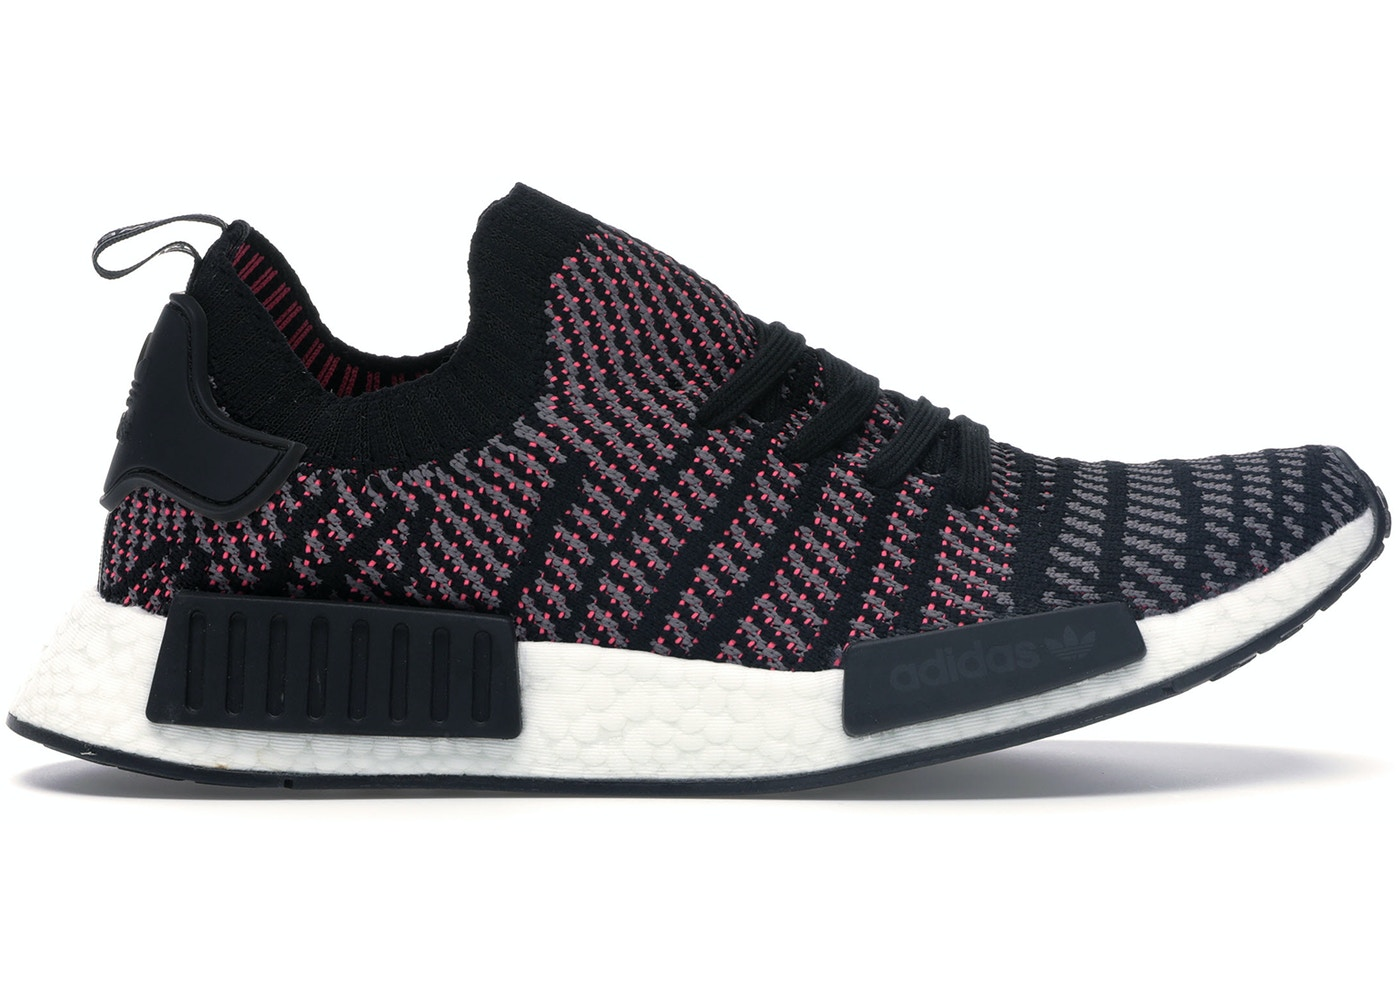 finest selection ad4ca 9e11c adidas NMD R1 STLT Black Grey Solar Pink